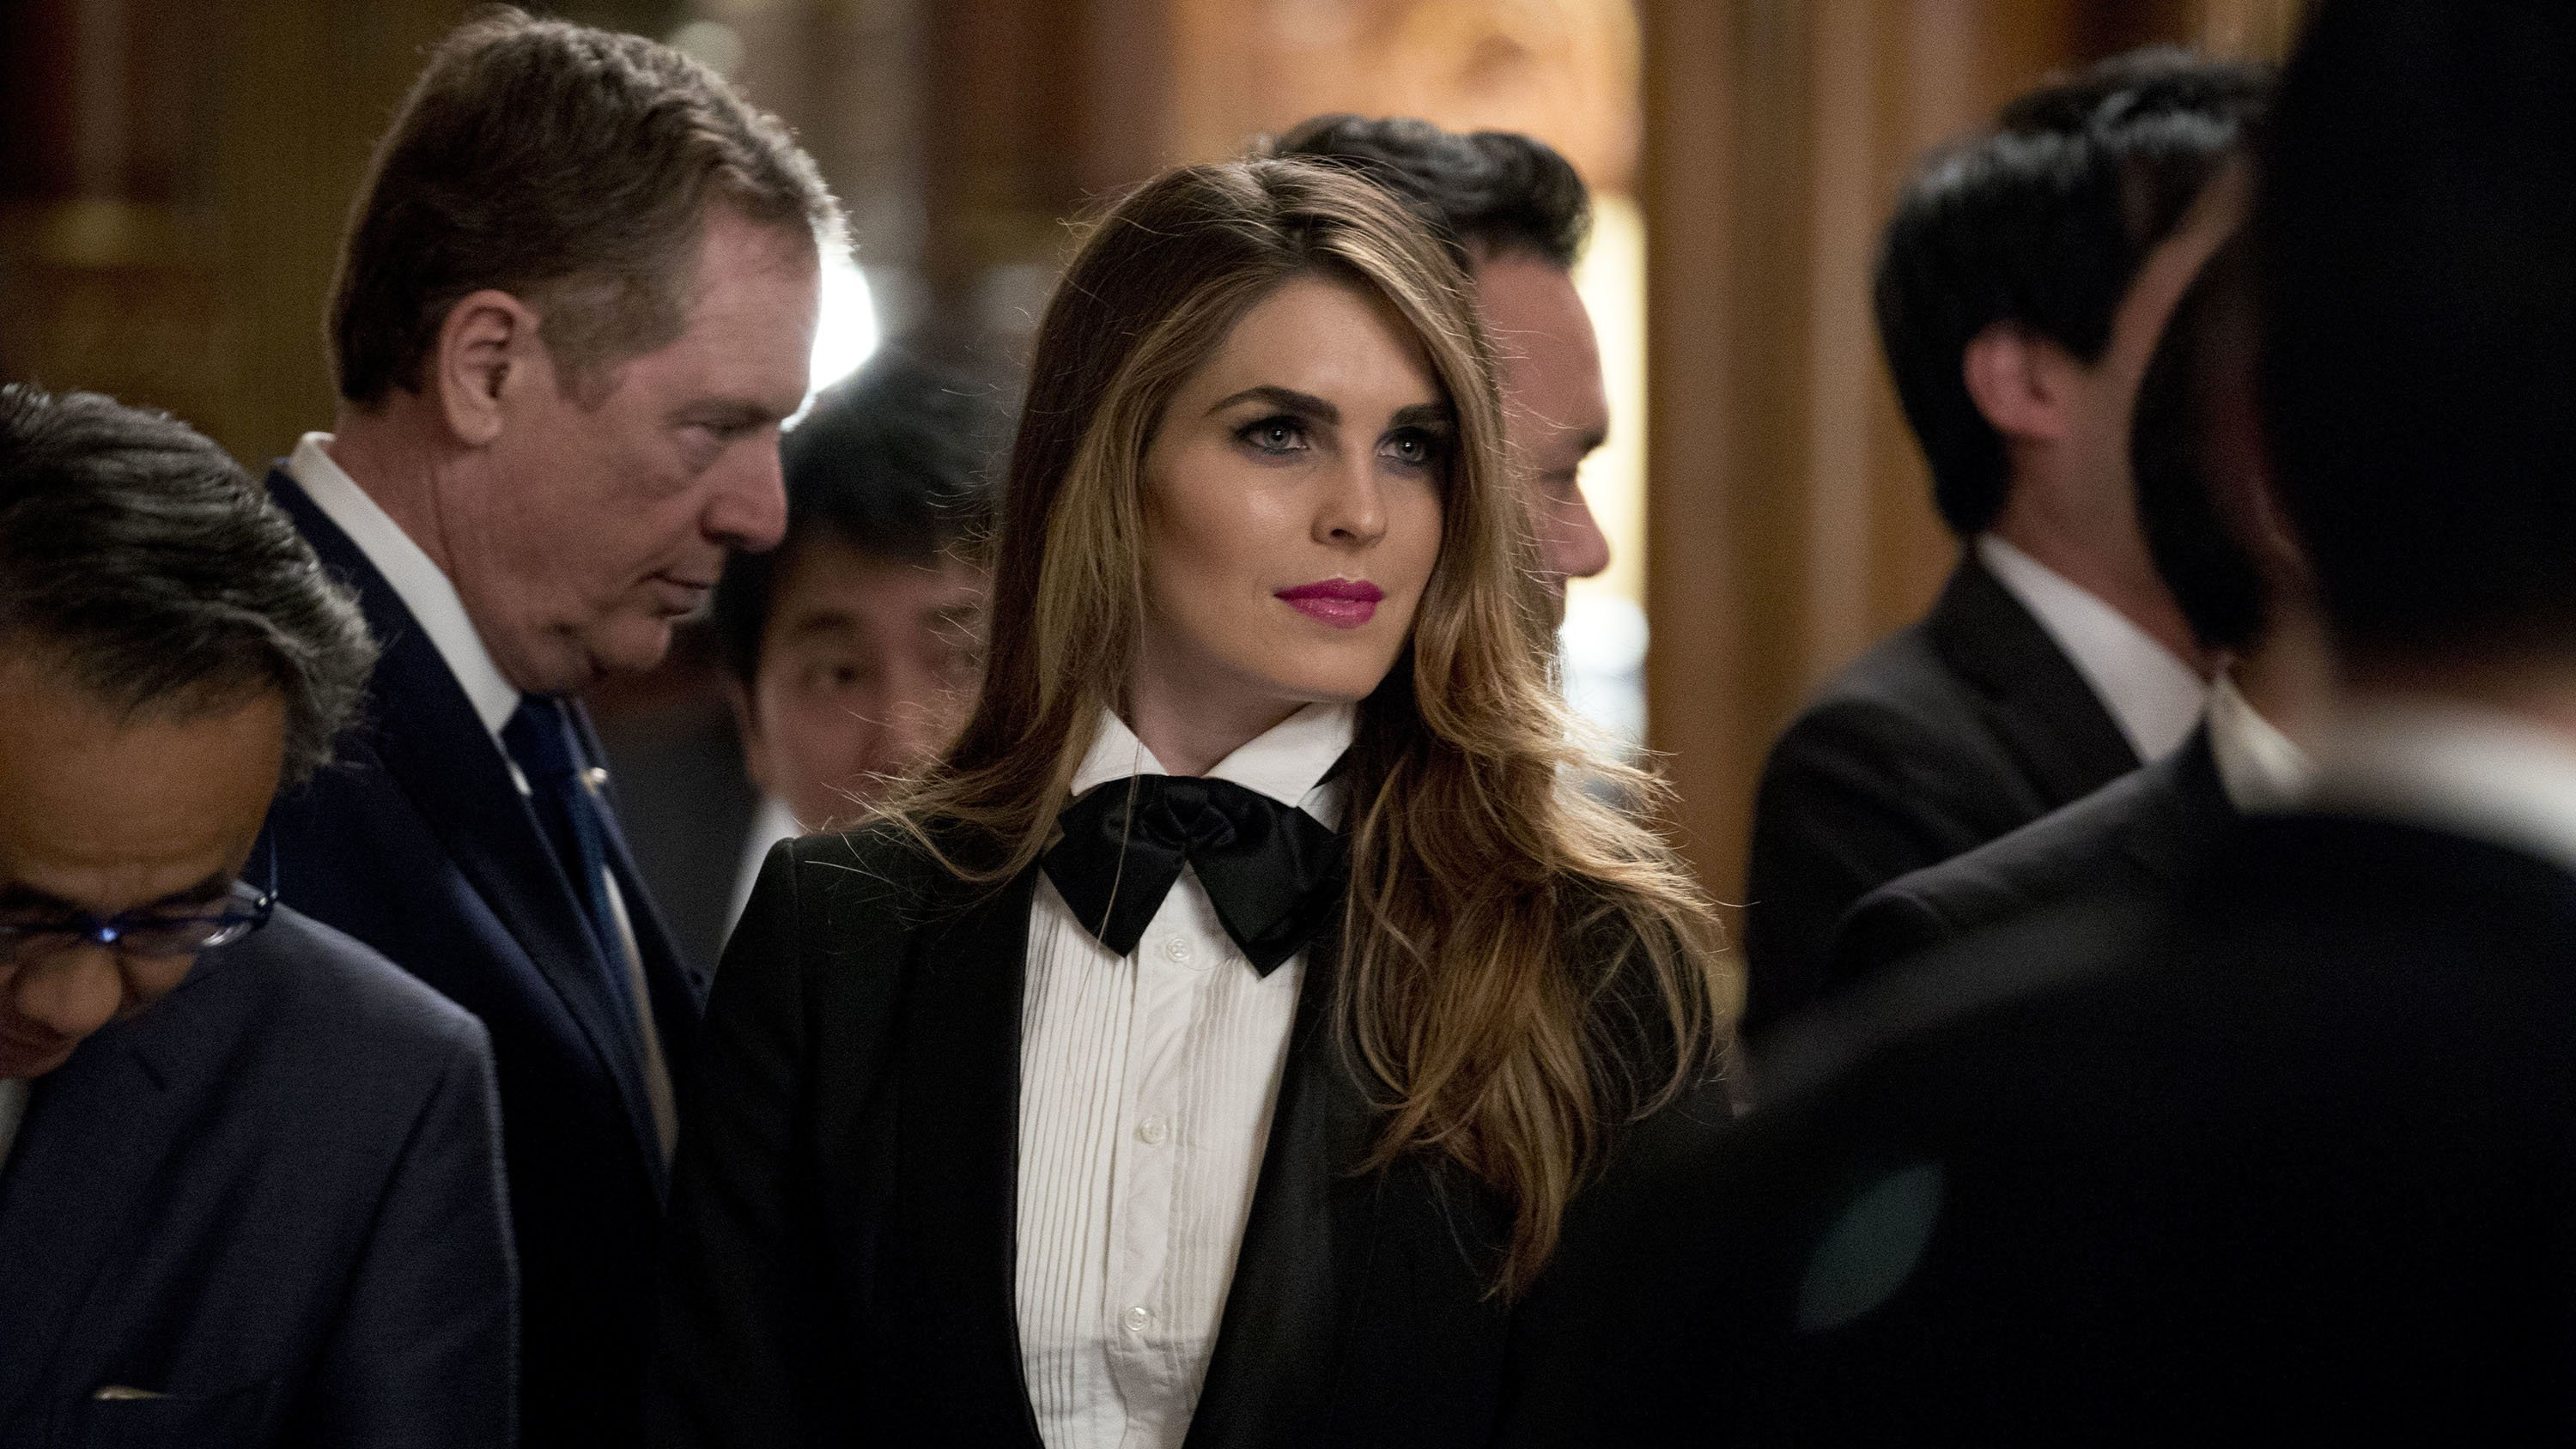 It took Hope Hicks seven years to go from college graduate to White House communications director.